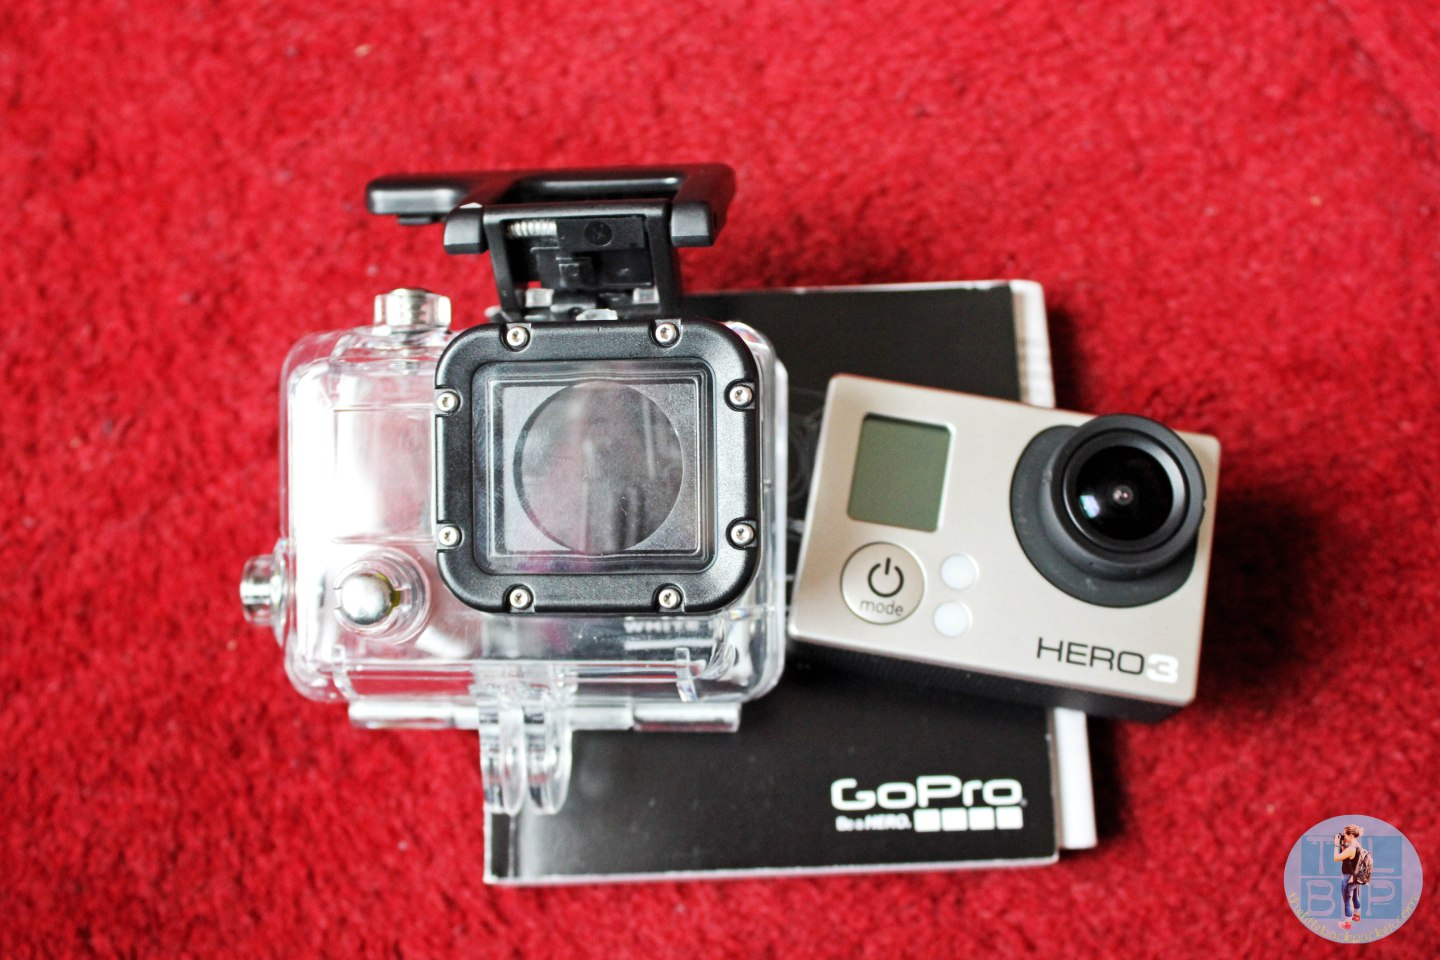 Go Pro Hero 3 White Edition Review